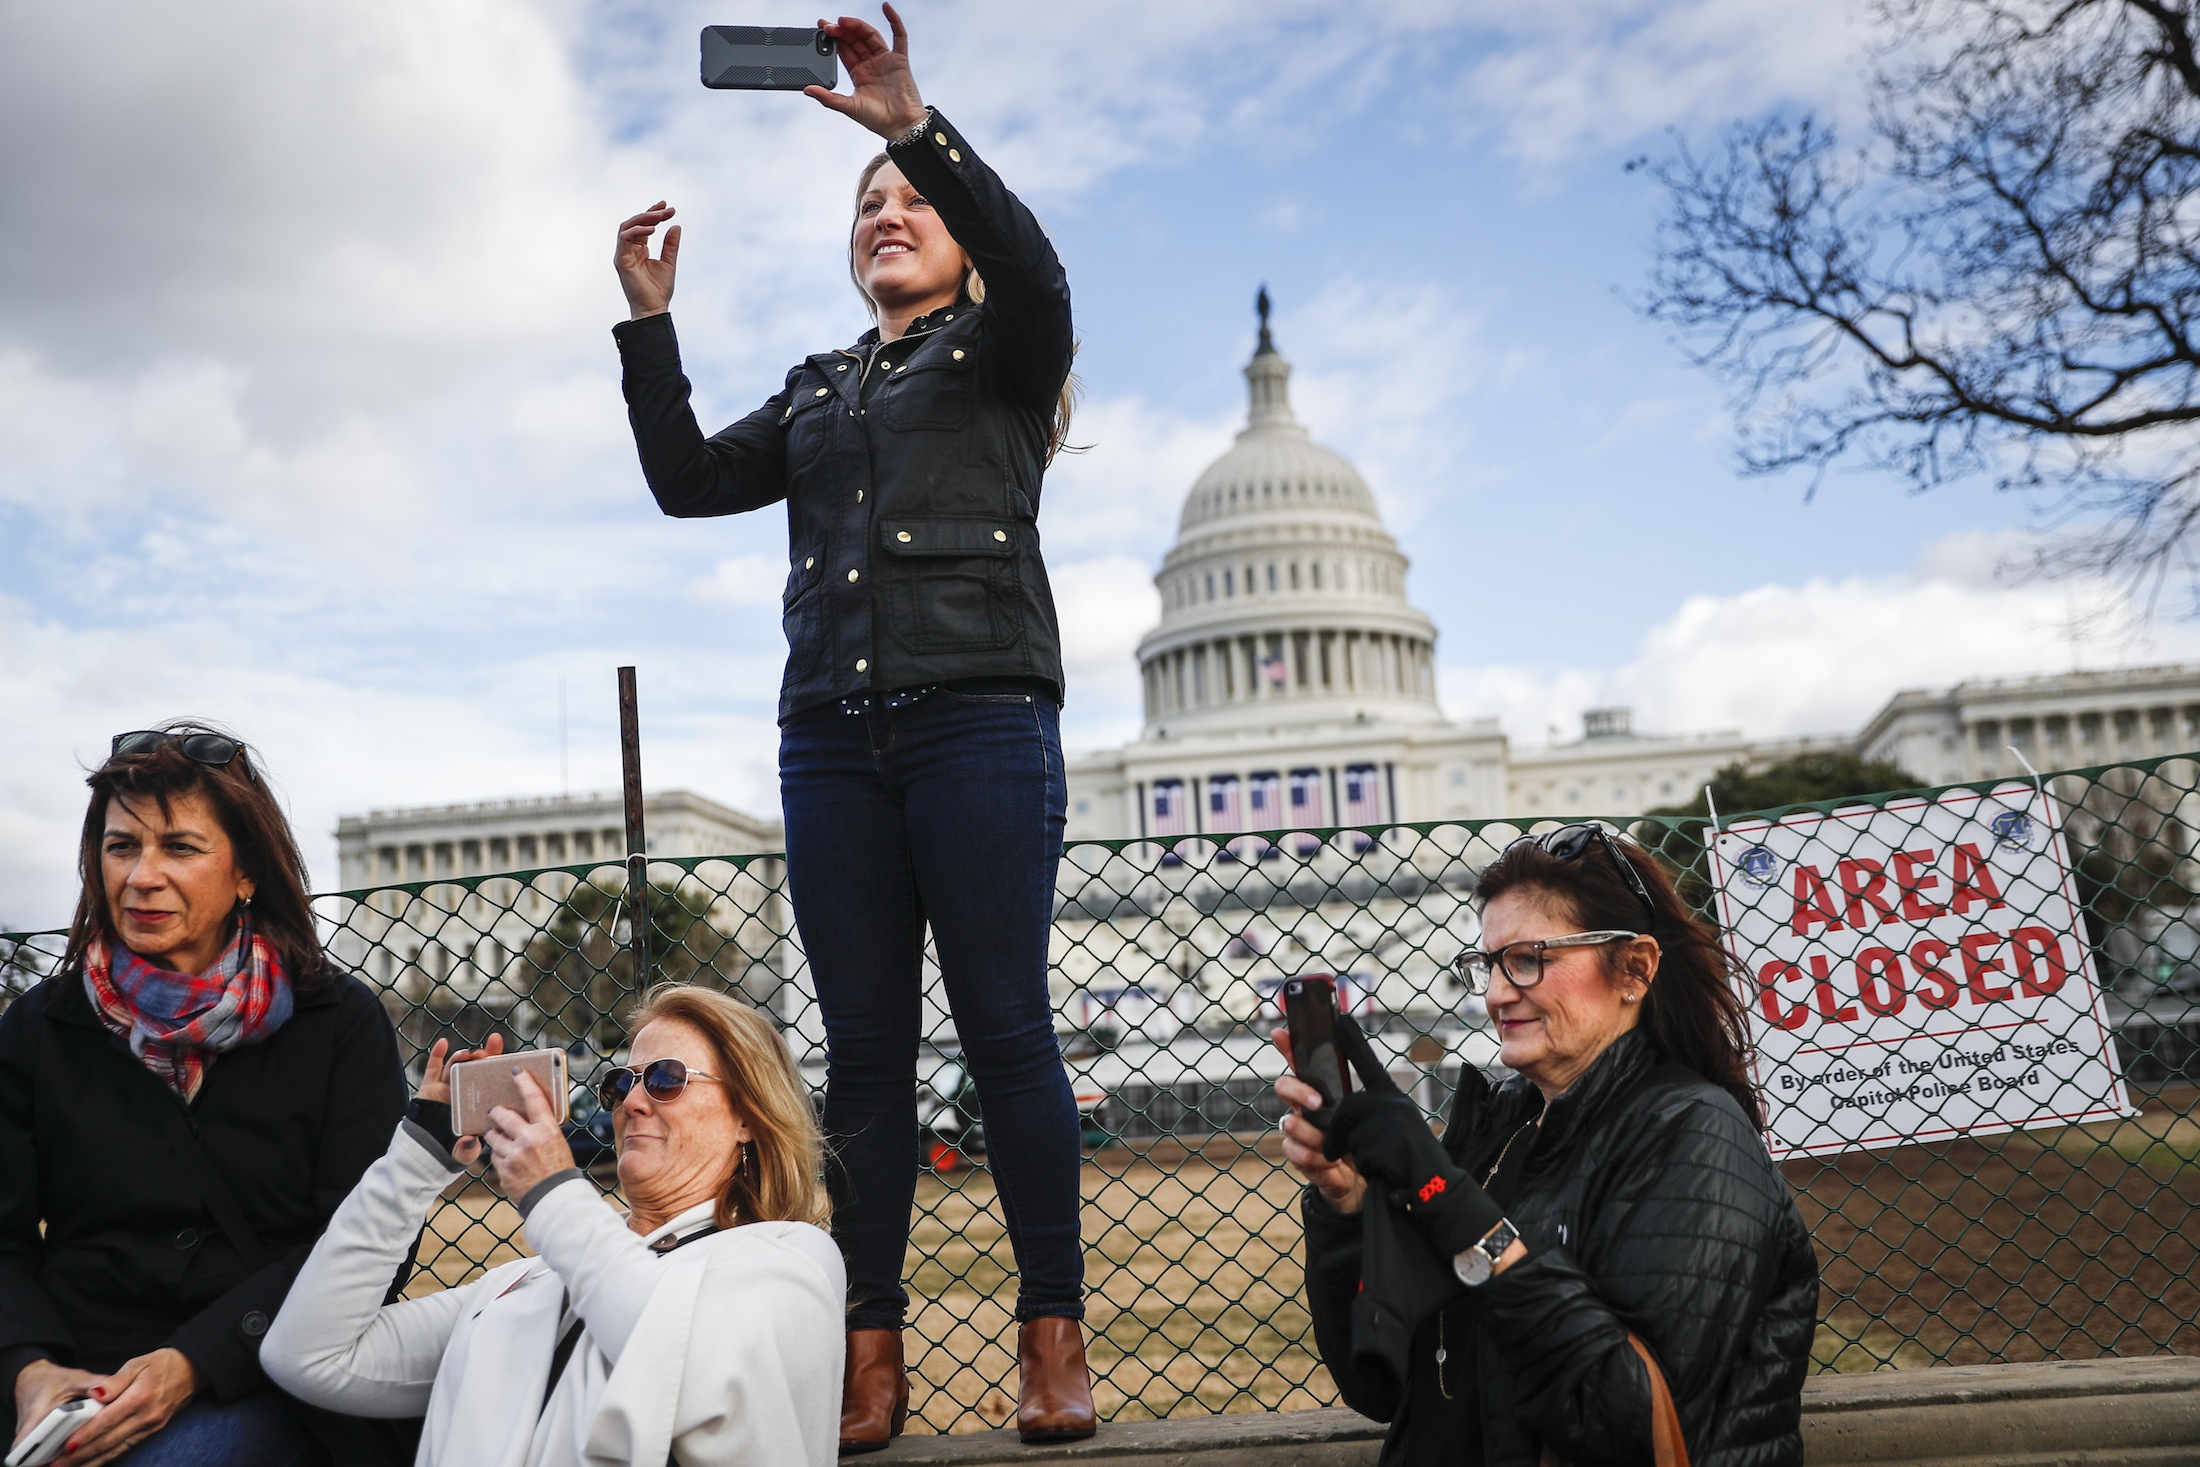 Micaela Johnson, of Leewood, Kan., in town to take part in Saturday's Women's March on Washington, takes a selfie with the Capitol Building in the background as preparations continue for Friday's presidential inauguration, Wednesday, Jan. 18, 2017, in Washington.(John Minchillo/ AP)